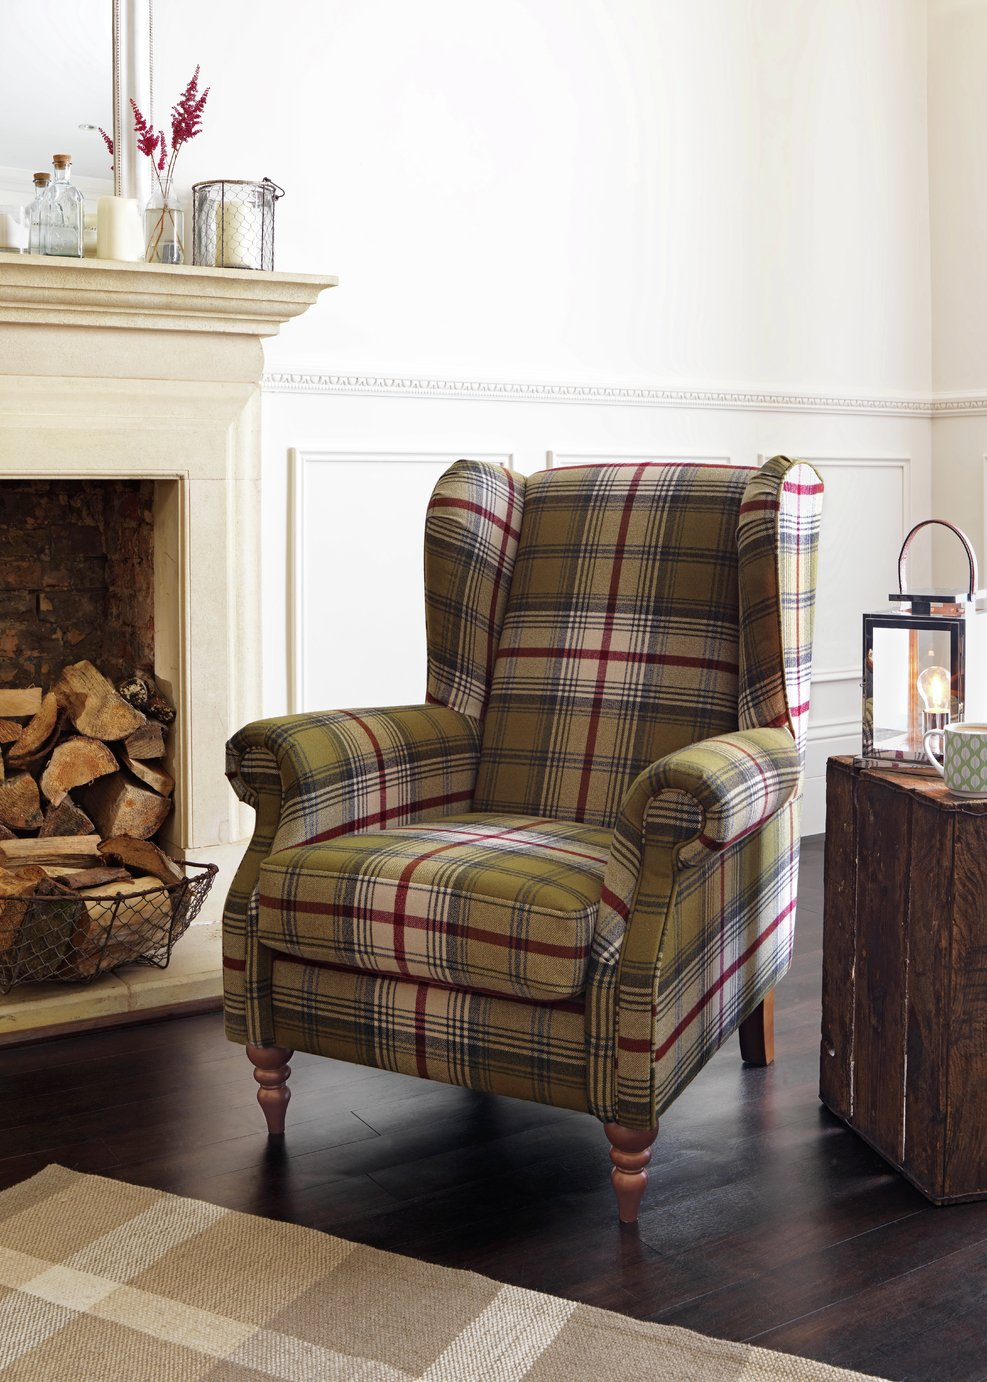 Buy Heart Of House Argyll Fabric Chair   Autumn Tartan At Argos.co.uk    Your Online Shop For Armchairs And Chairs, Living Room Furniture, Home And  Garden.